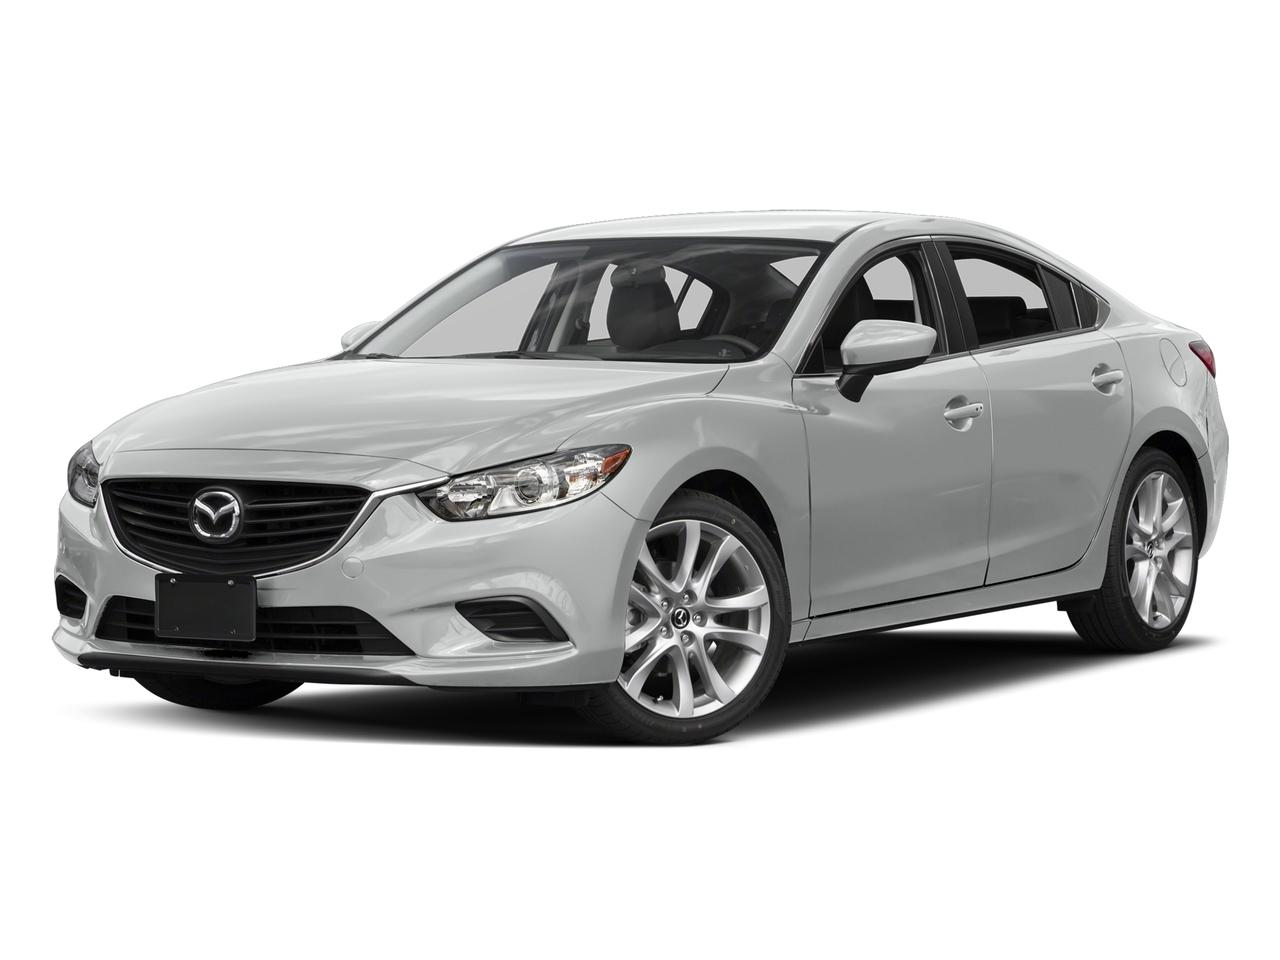 2016 Mazda Mazda6 Vehicle Photo in Doylestown, PA 18902